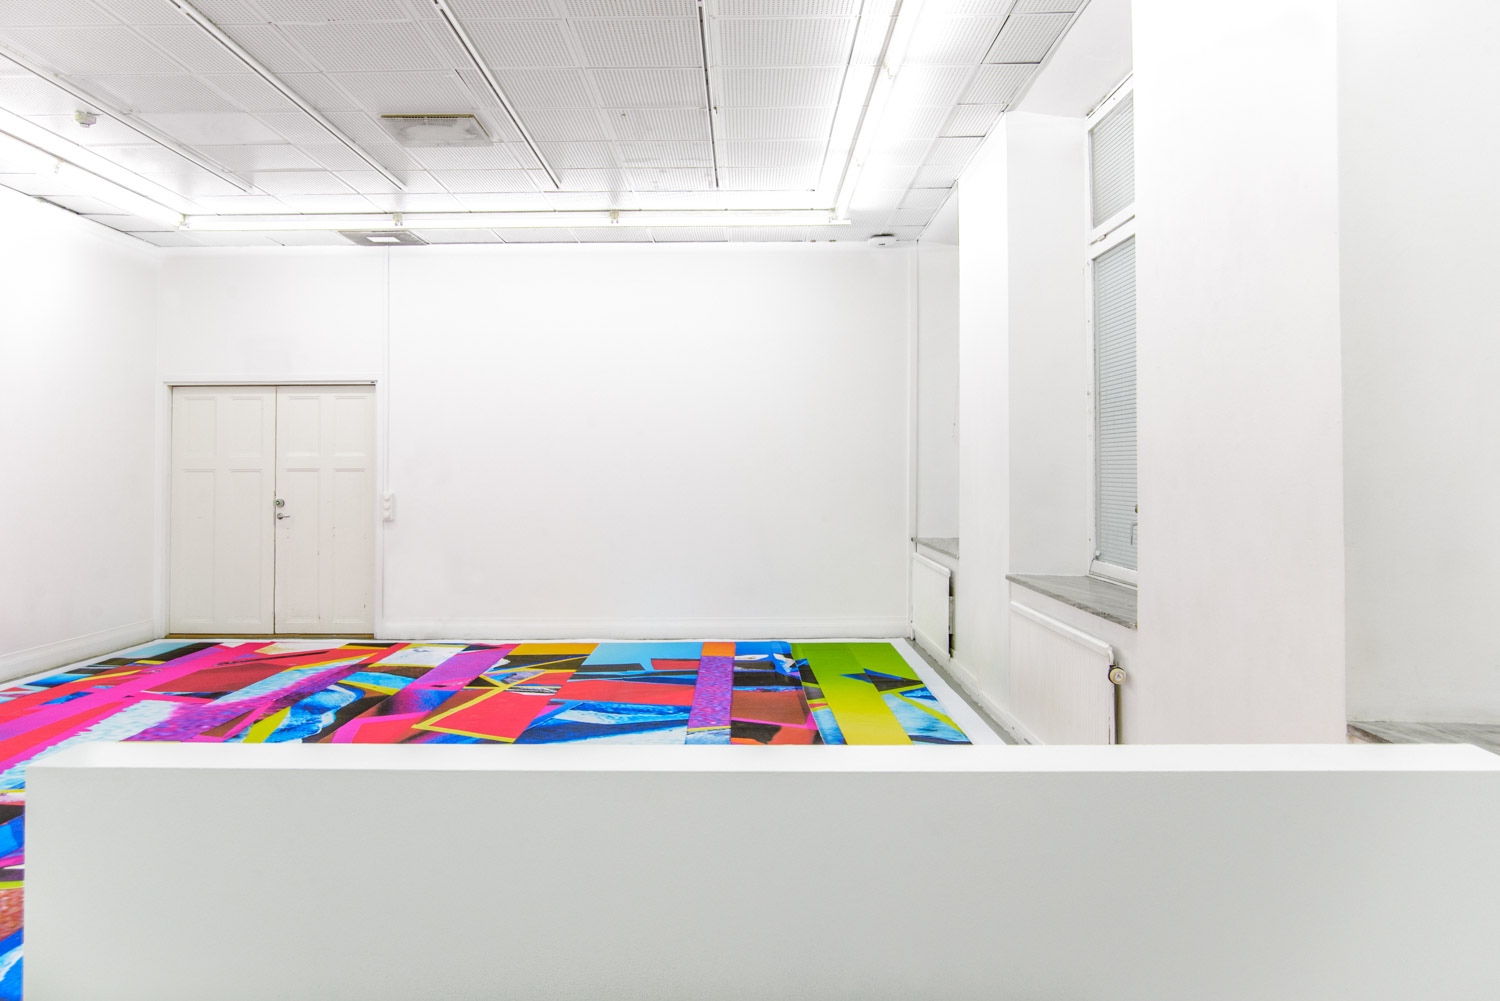 contemporary colorful carpet as an art installation by Stefano Conti in a white gallery